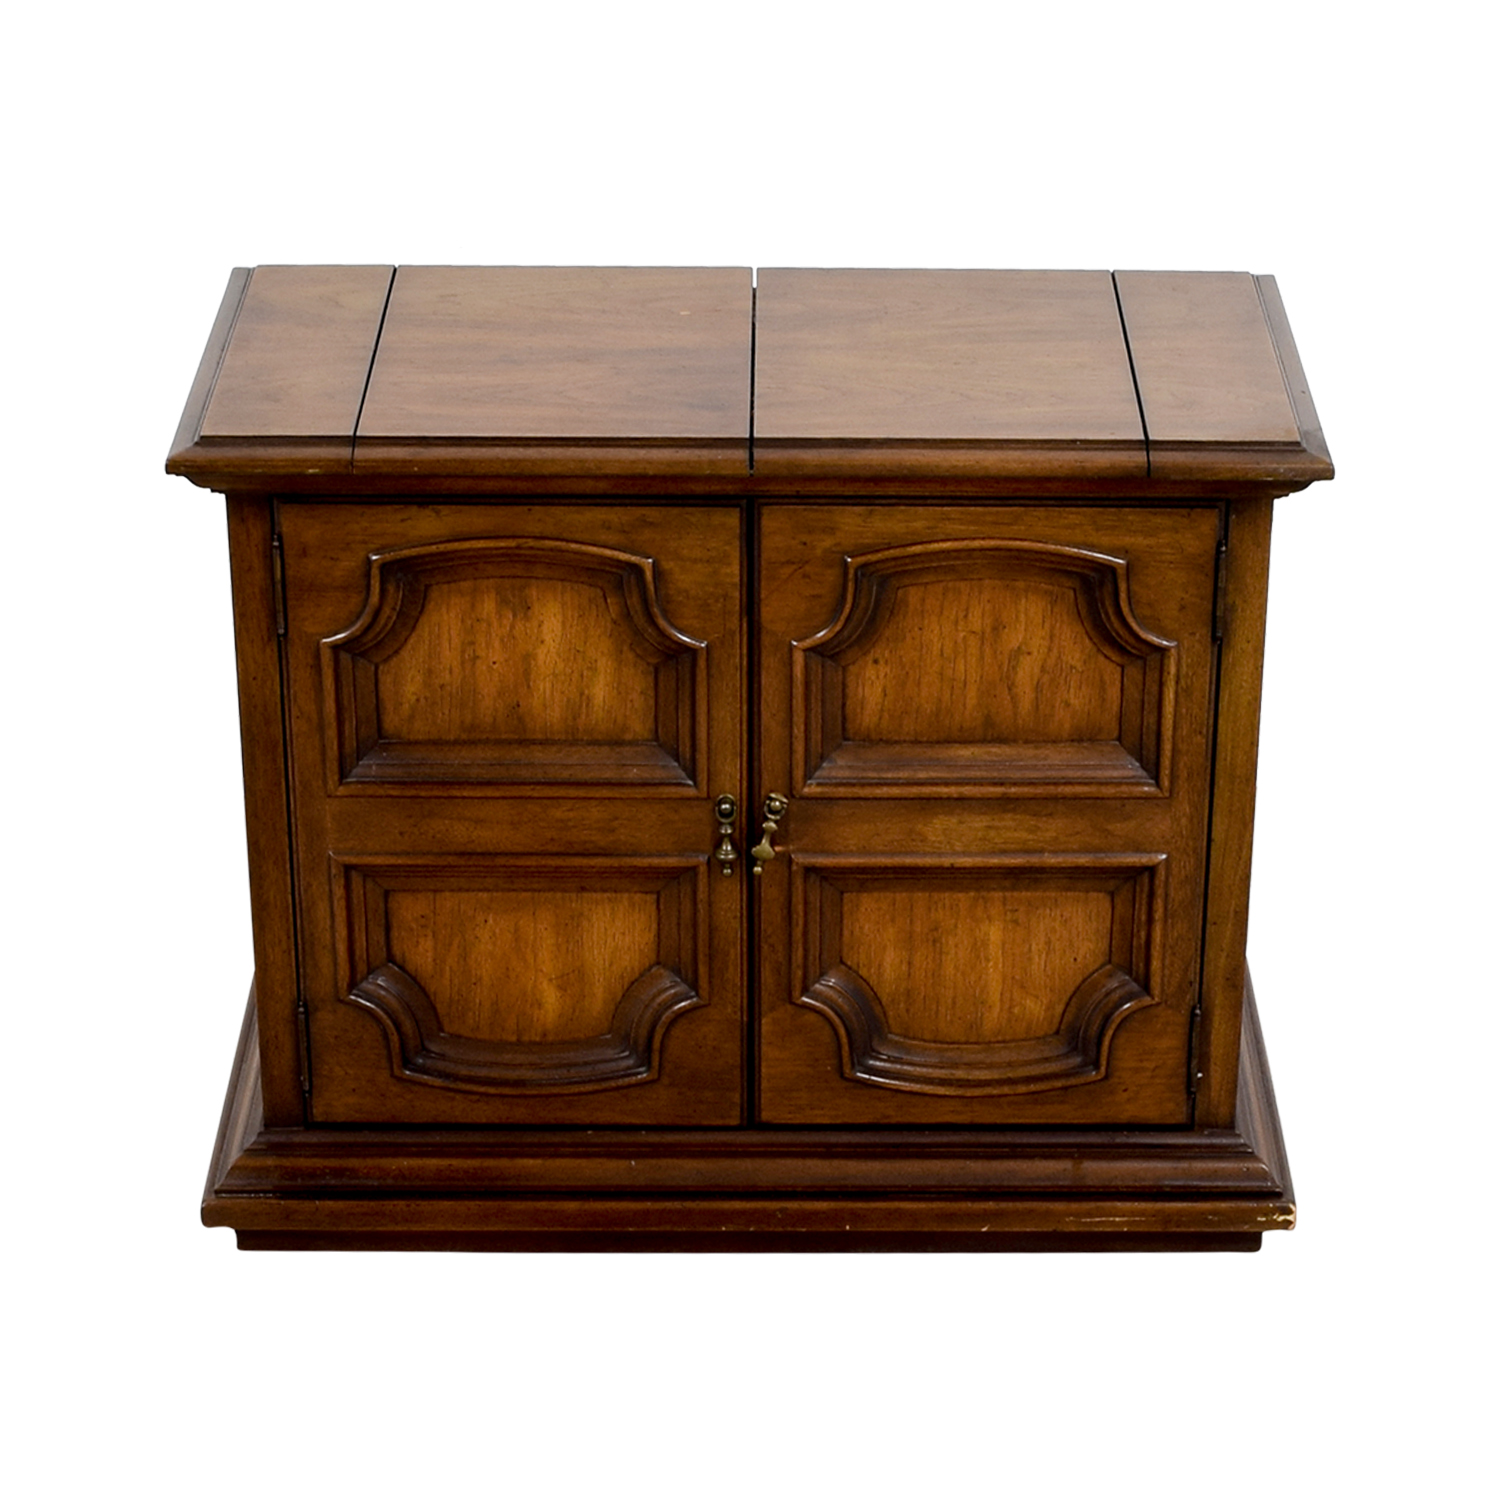 Wood Carved Sideboard with Storage / Cabinets & Sideboards